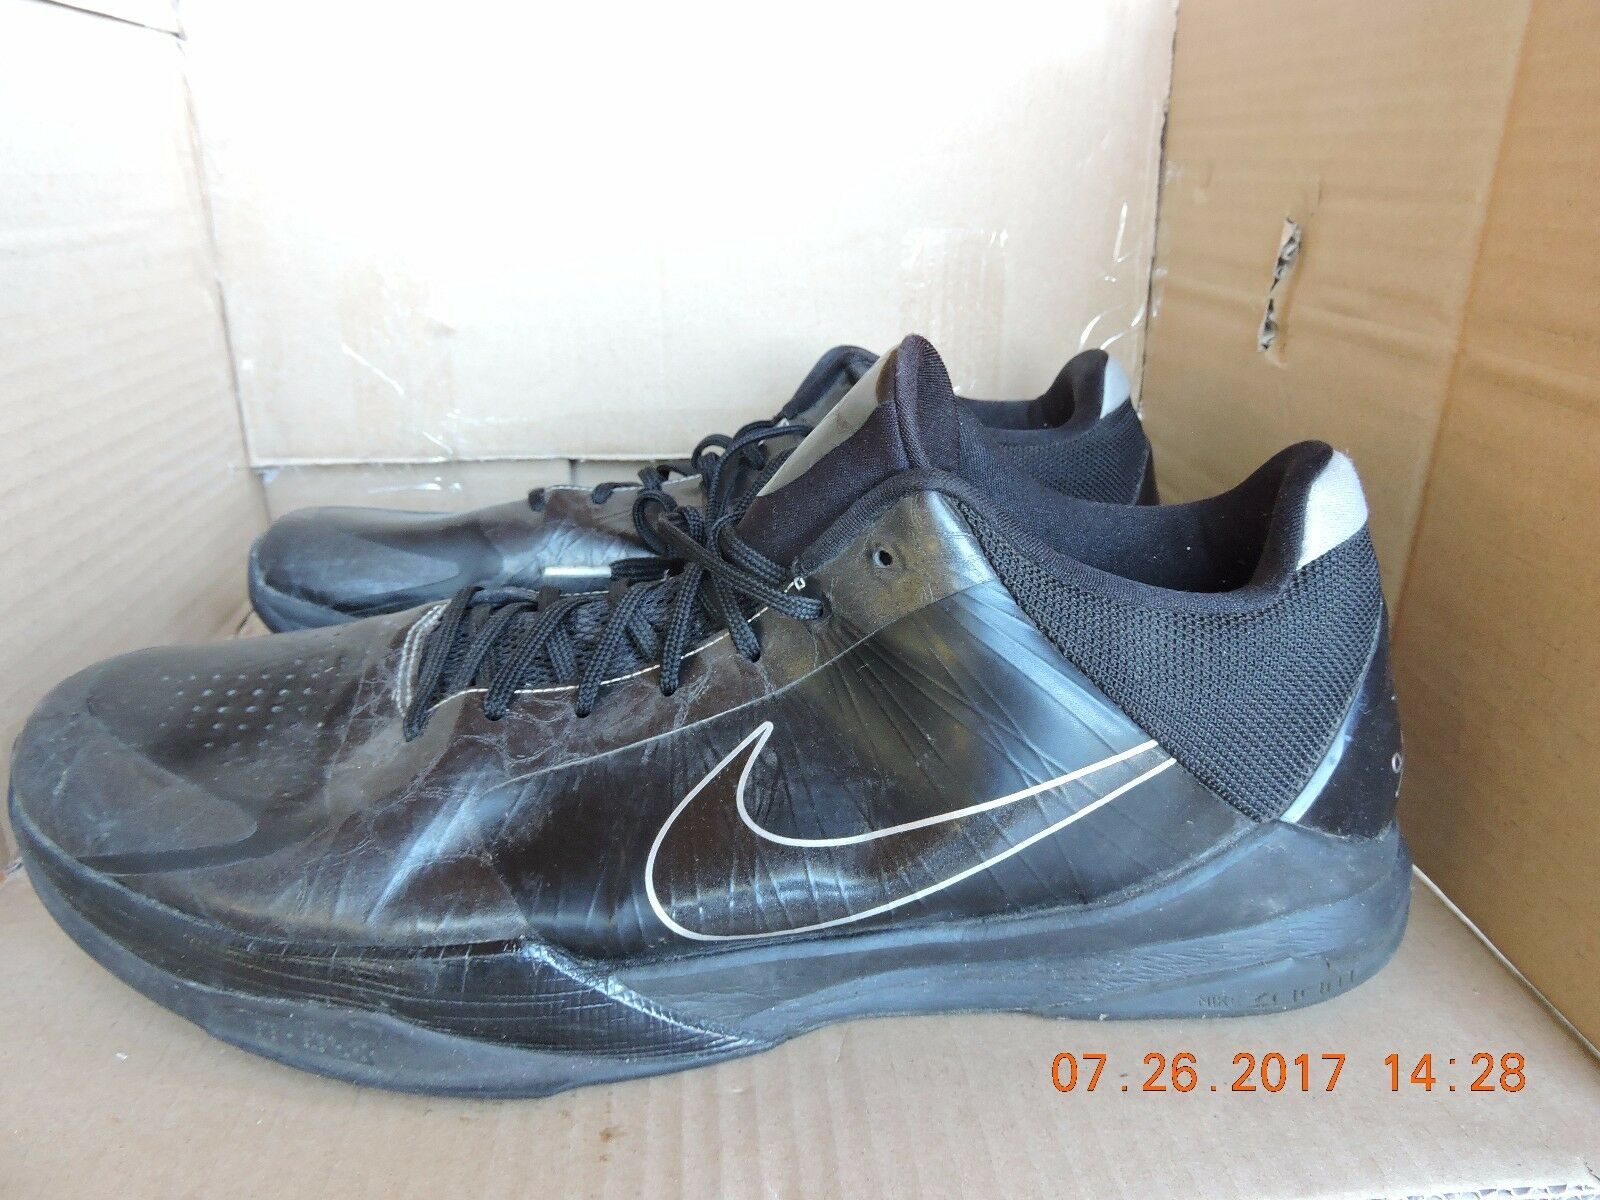 Nike Zoom Kobe V 5 Blackout 386429-003 men's black basketball shoes size 17 Seasonal clearance sale